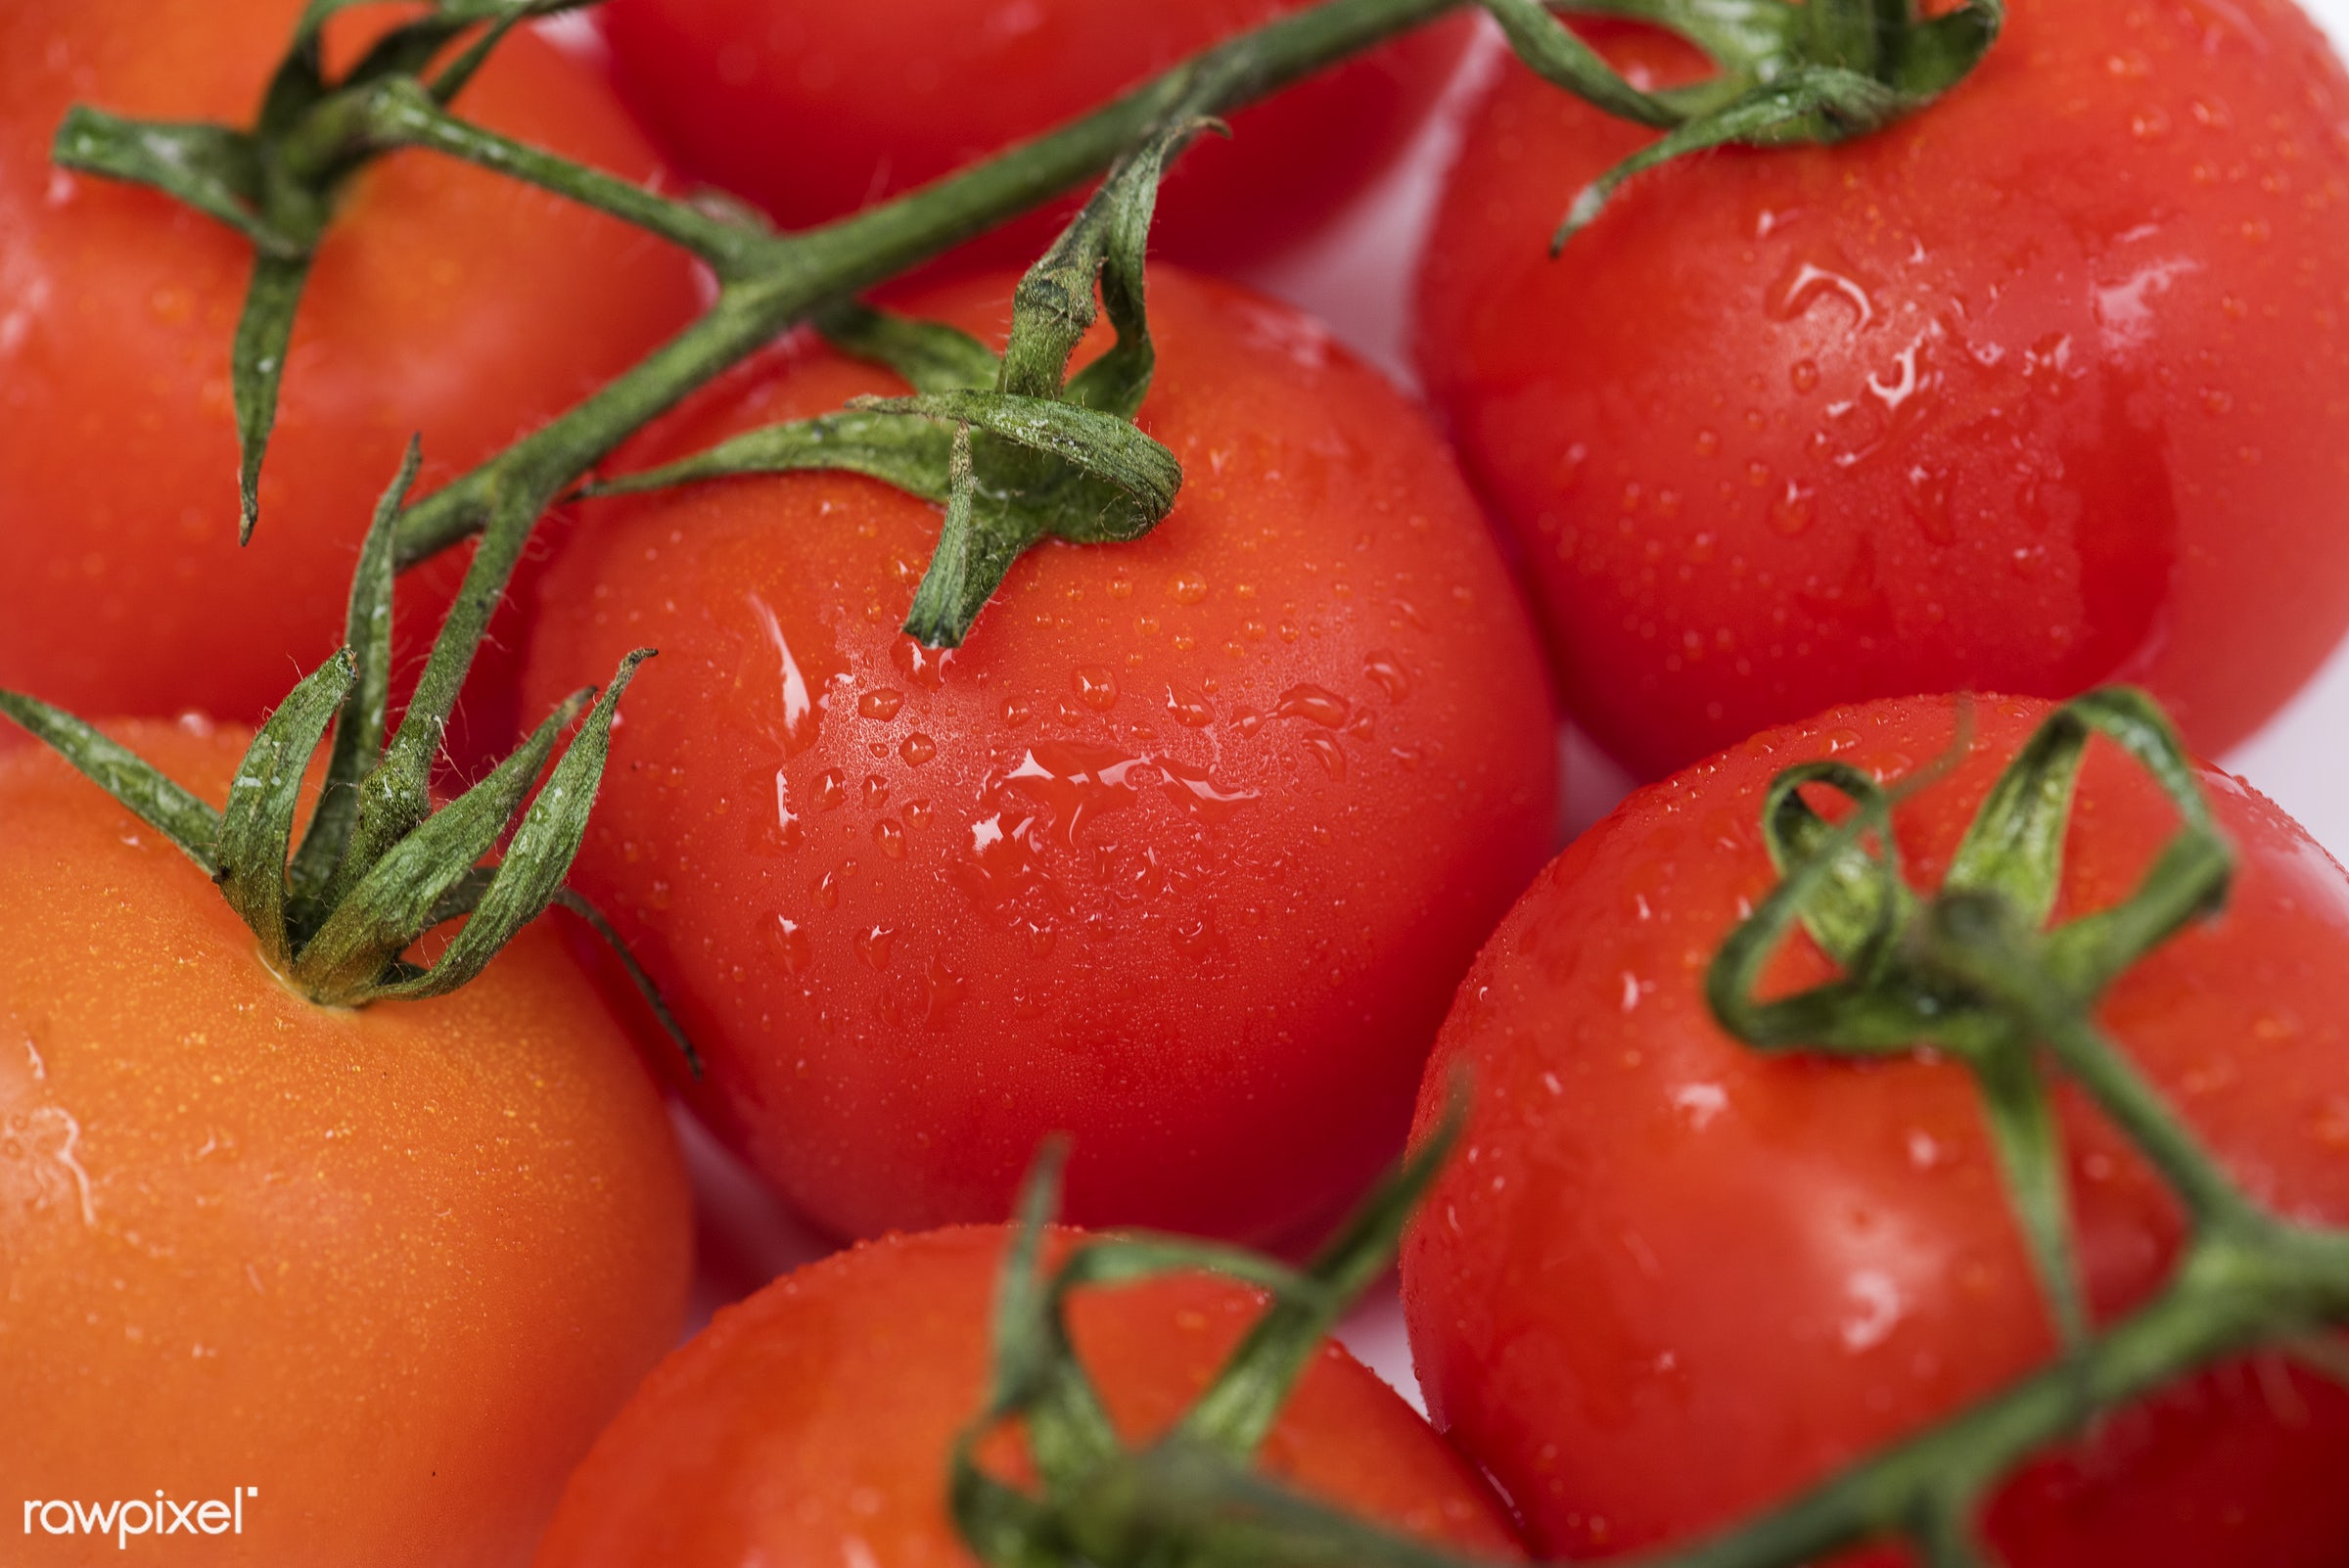 Fresh tomatoes - raw, plant, tomato, real, organic, red, nature, fresh, food, background, ripe, cultivated, ingredient,...